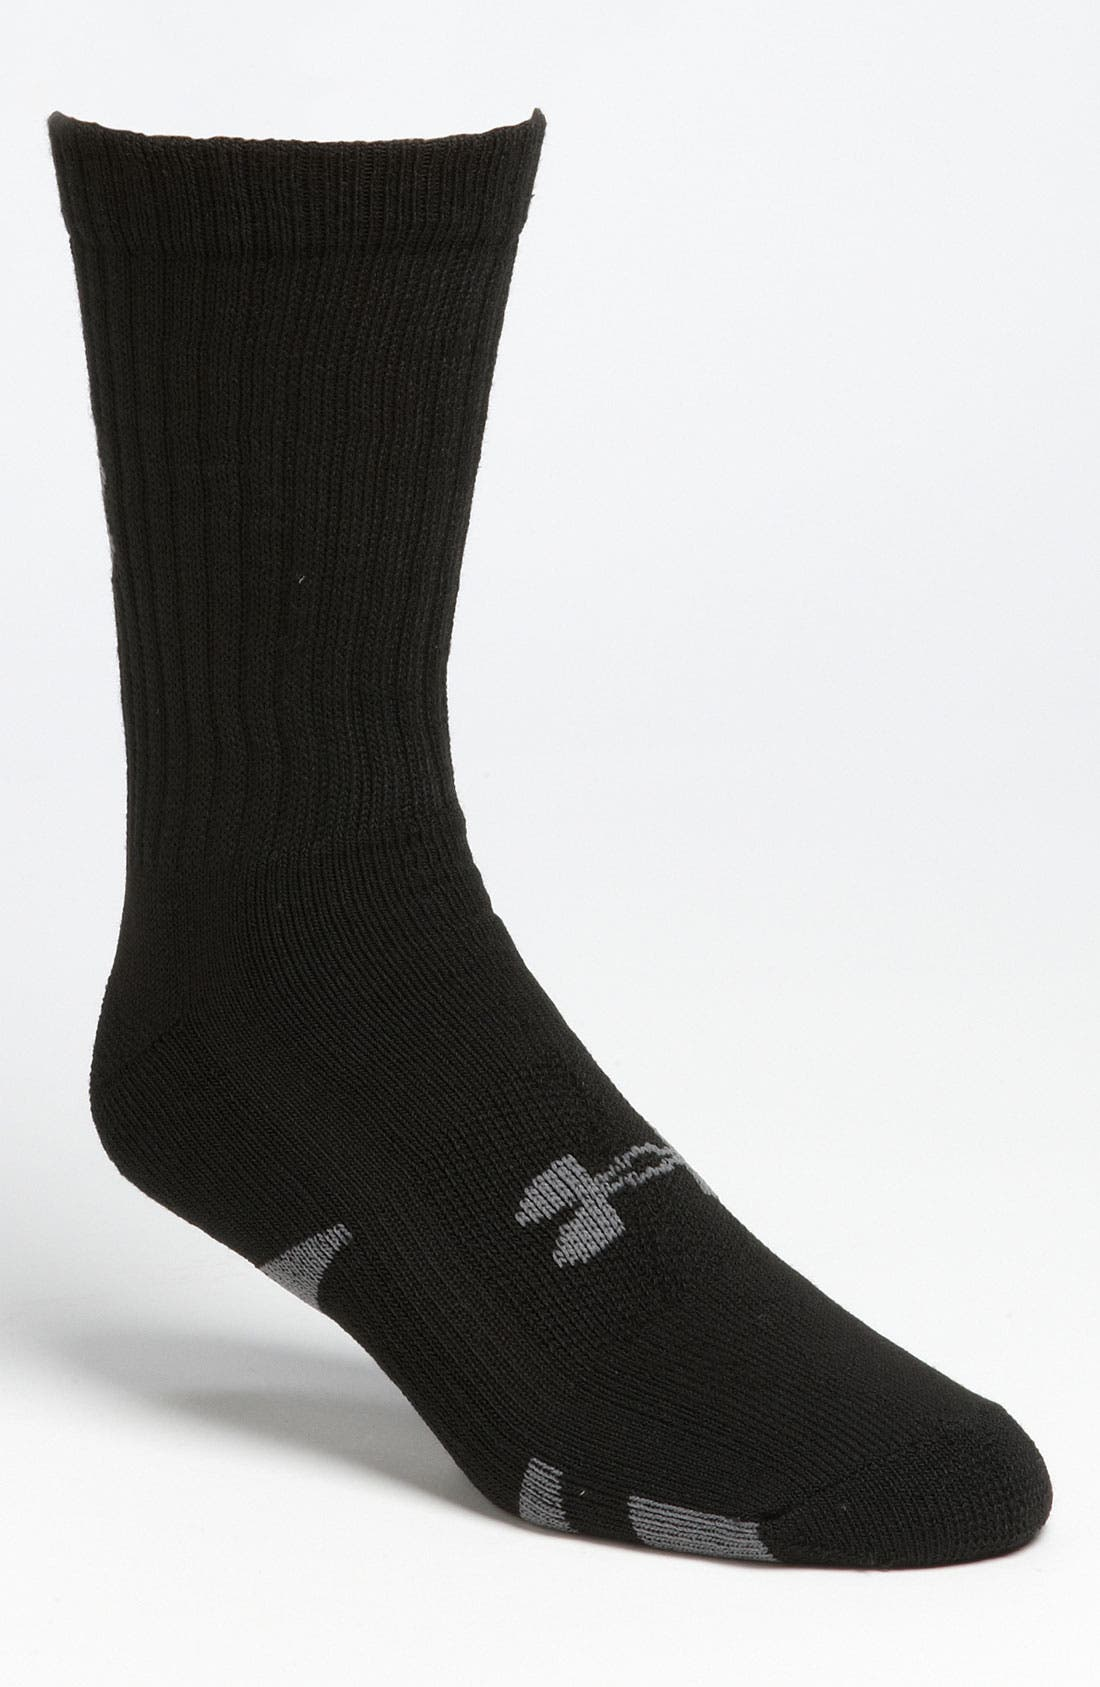 Alternate Image 1 Selected - Under Armour HeatGear® Crew Socks (4-Pack)